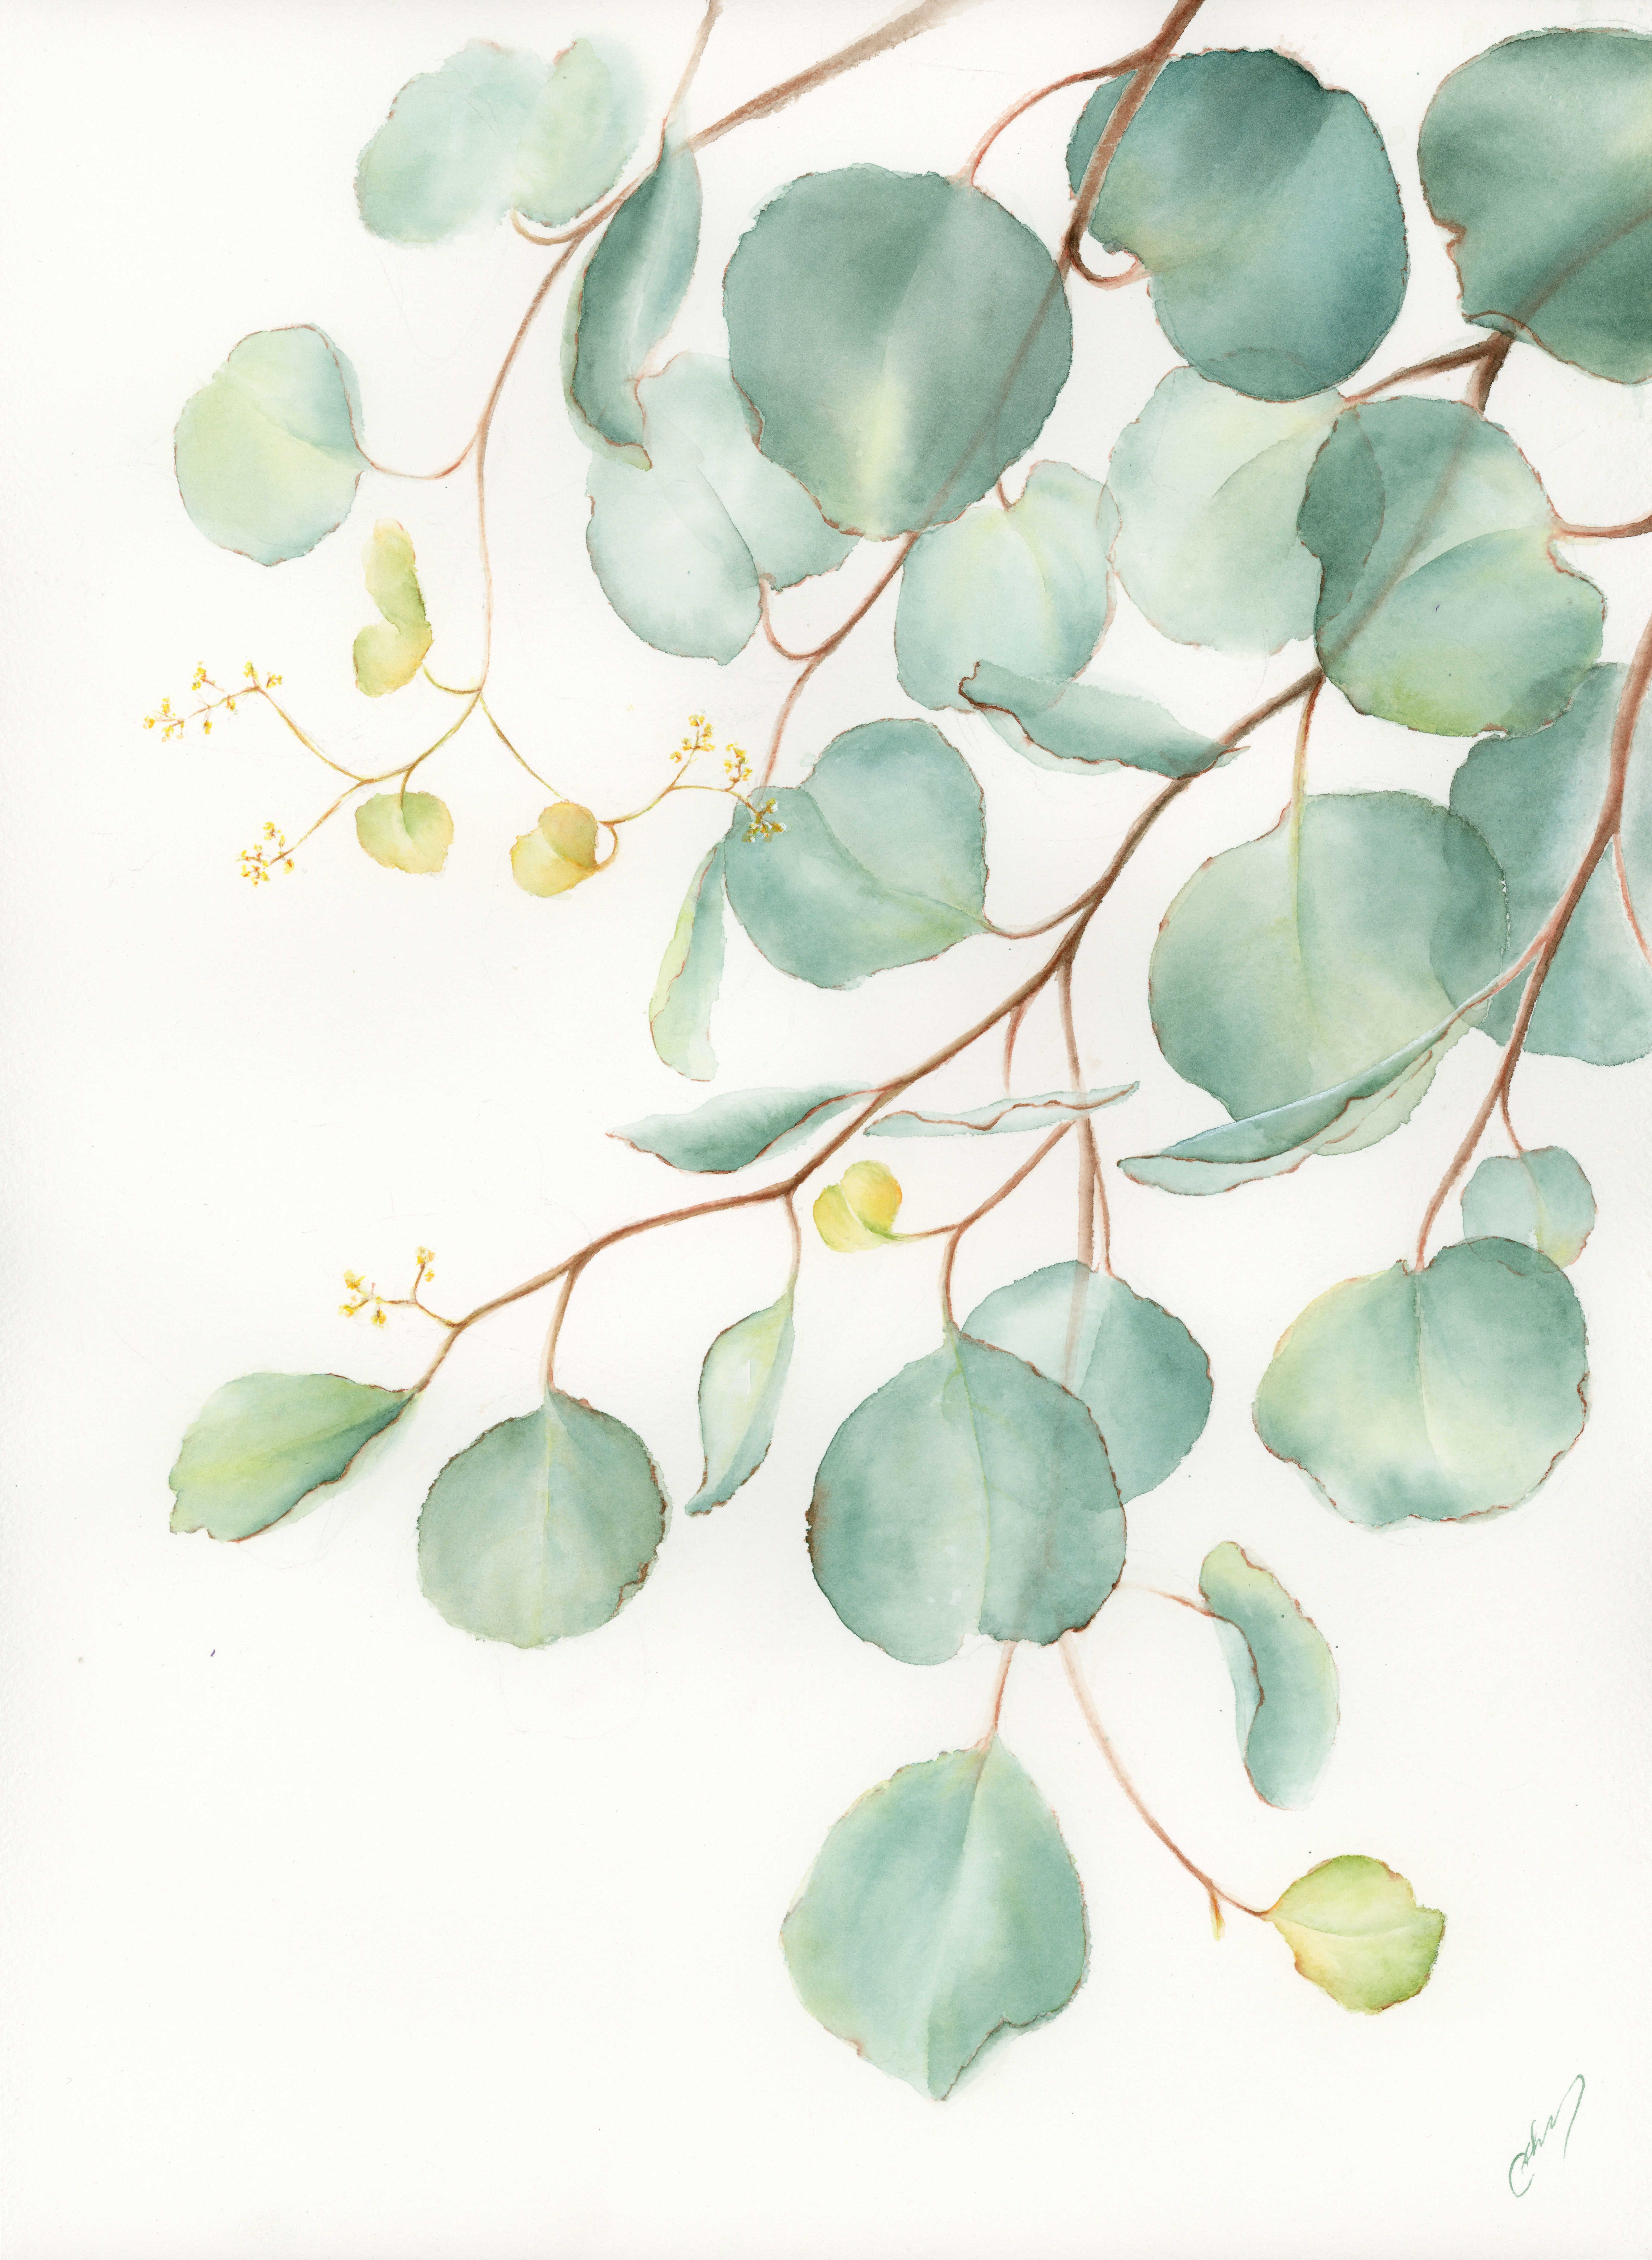 Eucalyptus Leaves By Cecilia Xiao Paintings For Sale Bluethumb Online Art Botanical Illustration Watercolor Watercolor Flowers Paintings Flower Painting